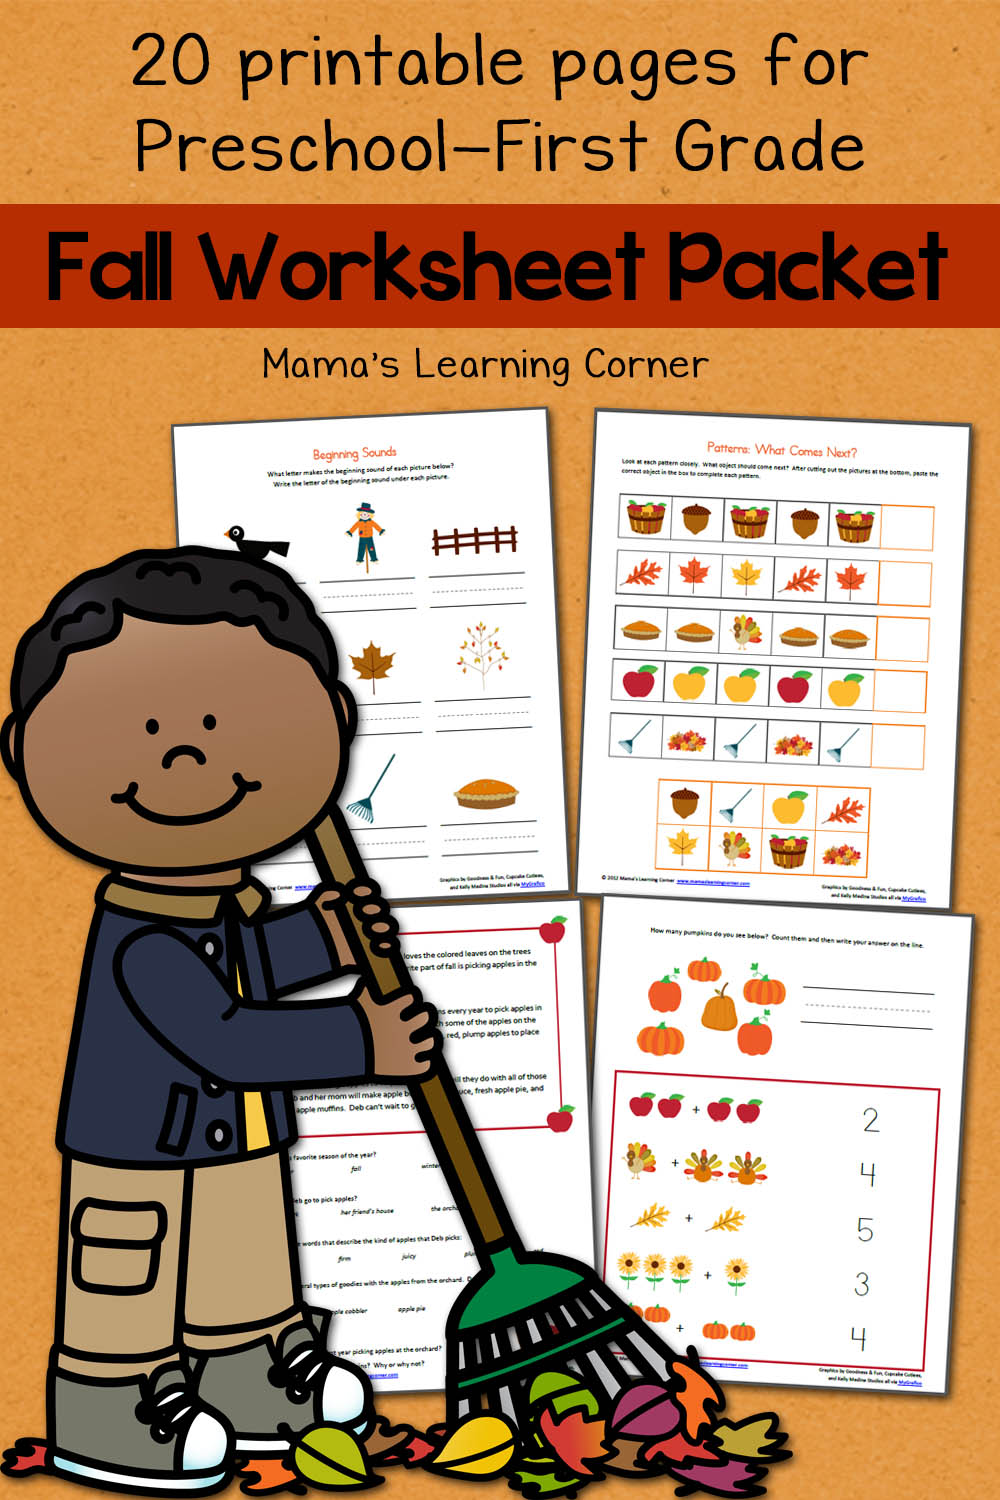 medium resolution of Fall Worksheet Packet for Preschool-First Grade - Mamas Learning Corner